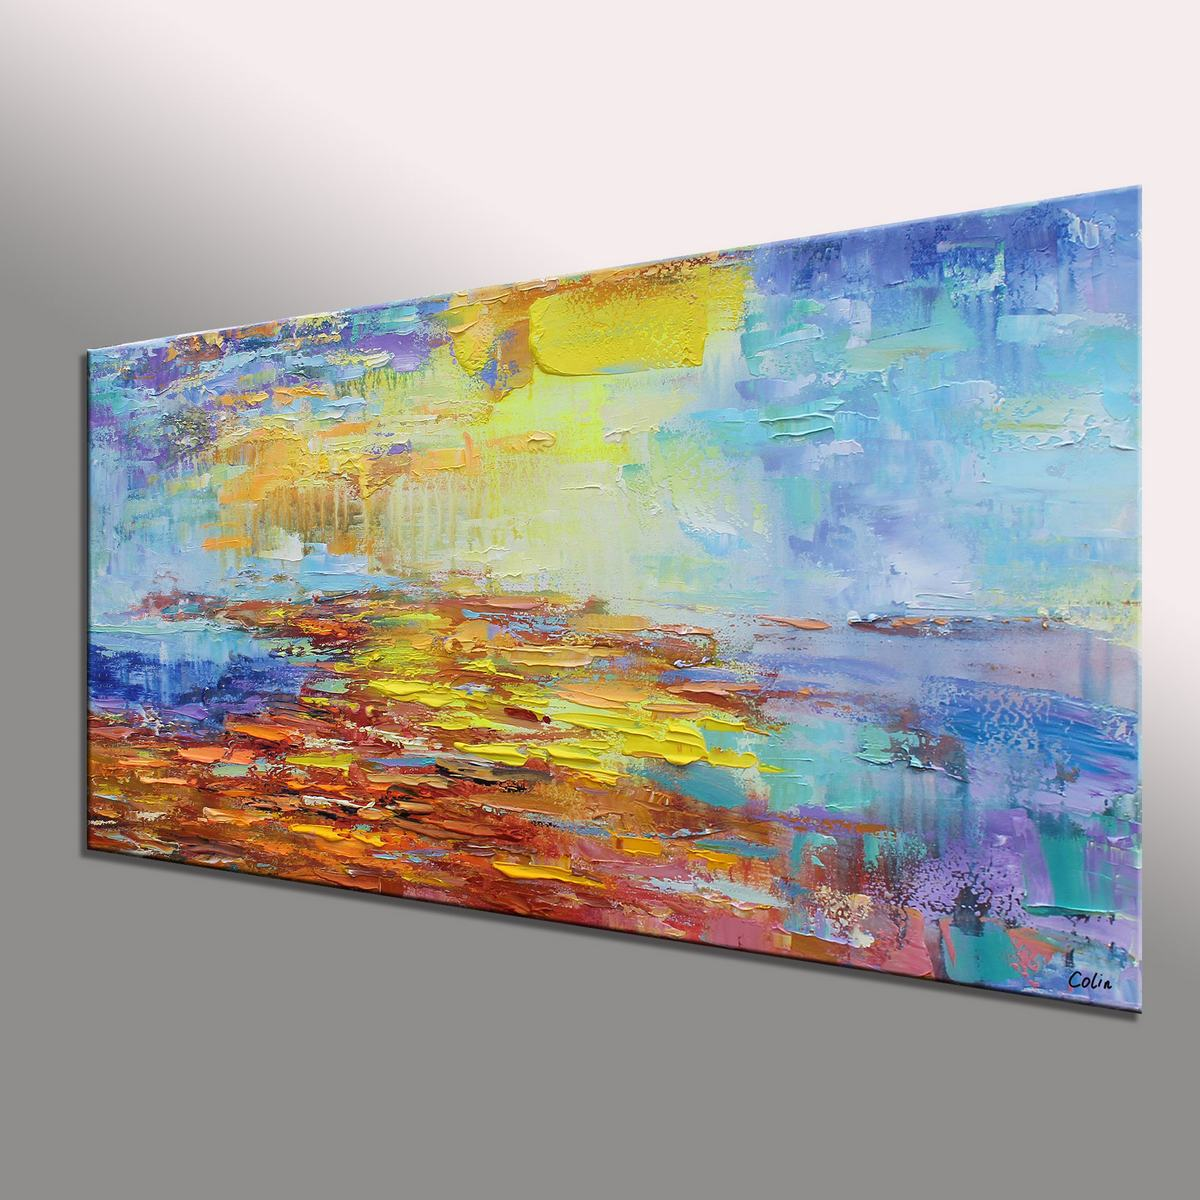 Bedroom Wall Art, Abstract Art, Original Art, Contemporary Art, Large Art, Abstract Painting, Wall Art, Canvas Painting, Oil Painting, 533